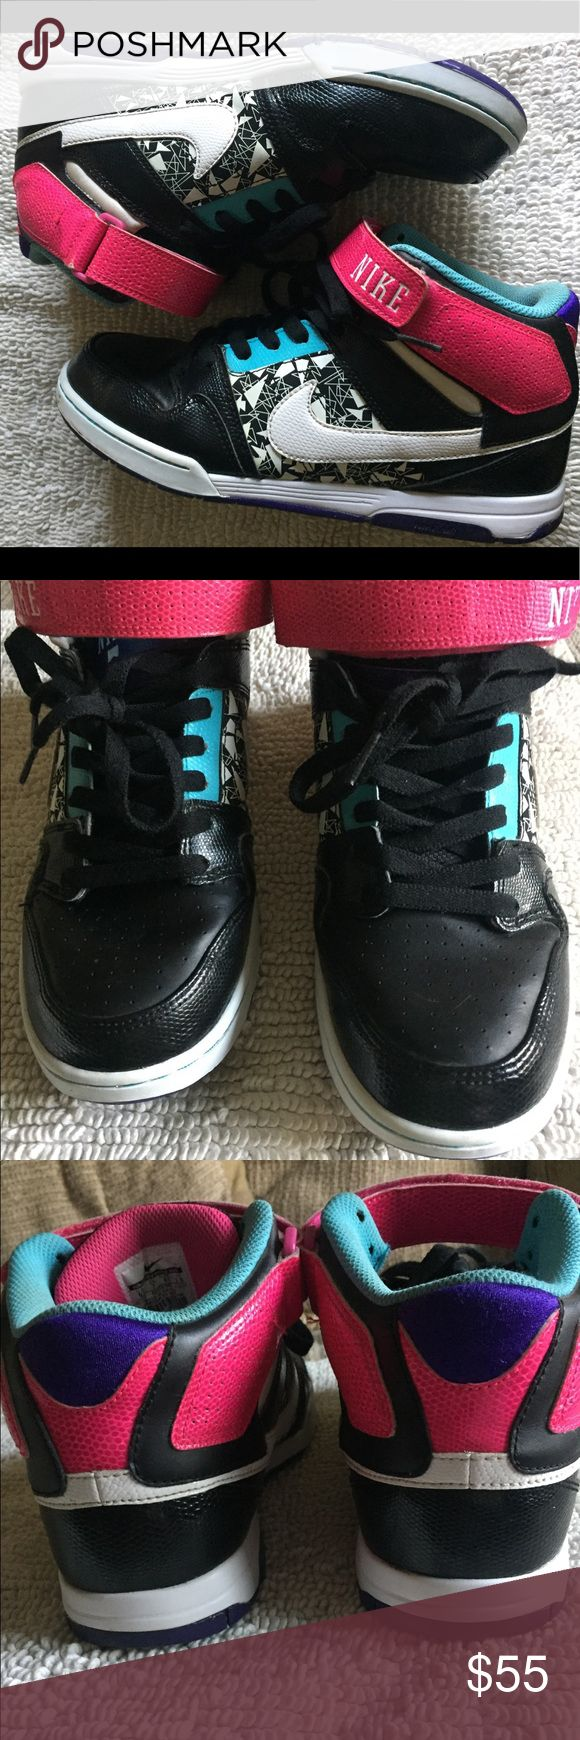 EUC women's Nike hi tops size 9.5 EUC nikes bought for my daughter but her feet outgrew pretty much right away so they were seldom used, still have lots of tread. Colors are hot pink, turquoise, white, black, purple and a geometric print. I tried to show pics of anything that might be consisted a flaw. The tiny mark near the front of the left shoe could probable be washed off.? Great addition to any collection or perfect for back to school. Reasonable offers welcomed Nike Shoes Sneakers